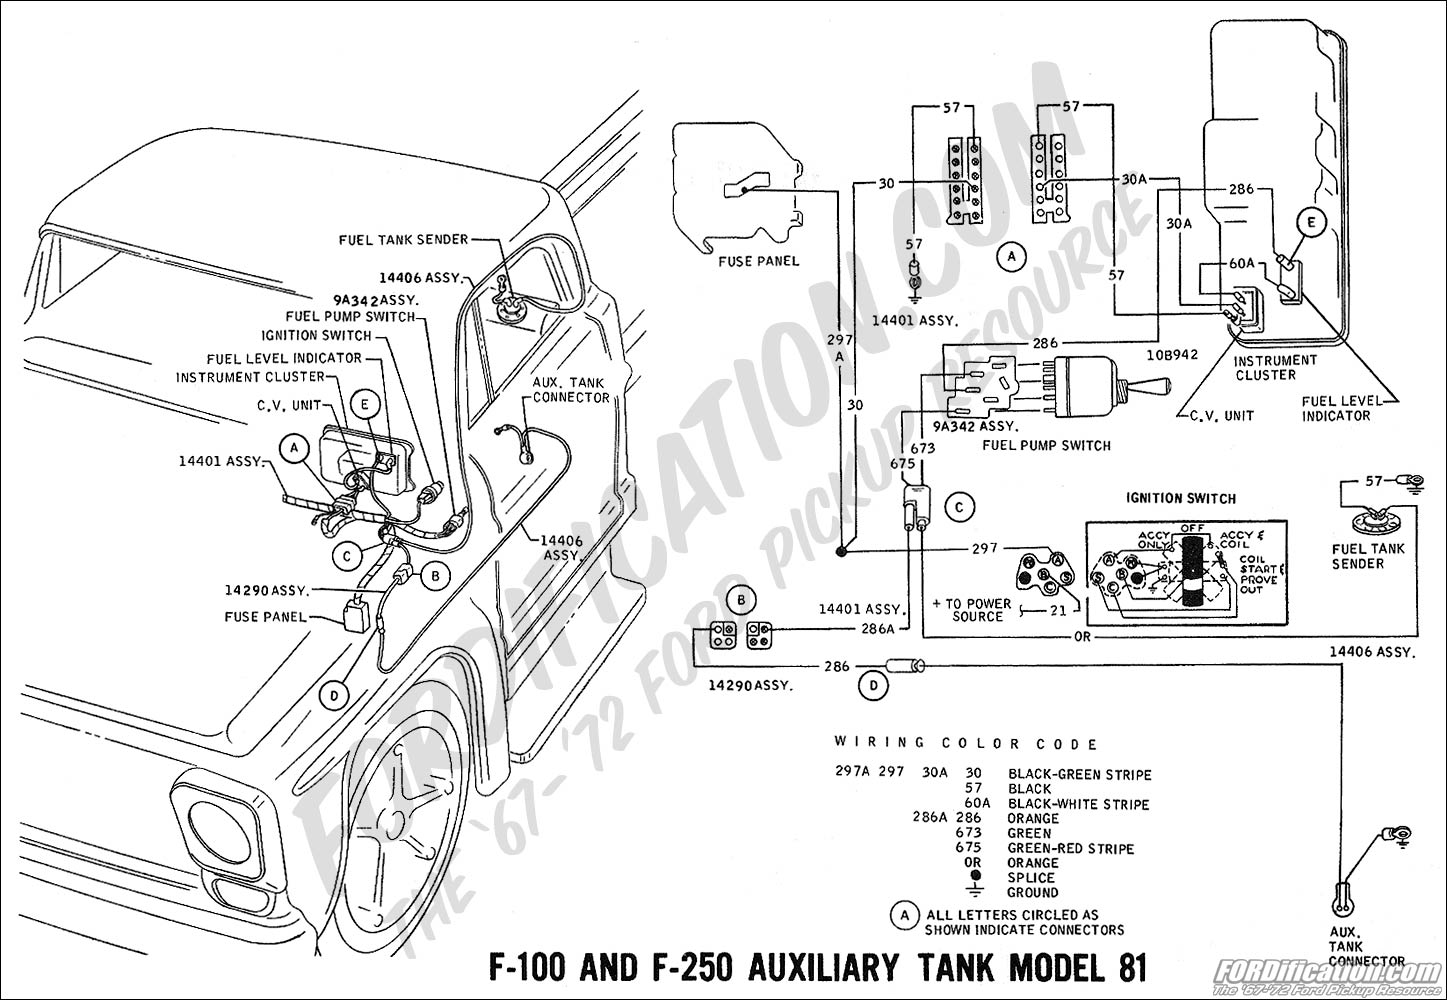 1979 F150 Fuse Panel Diagram Wiring Diagram Detailed